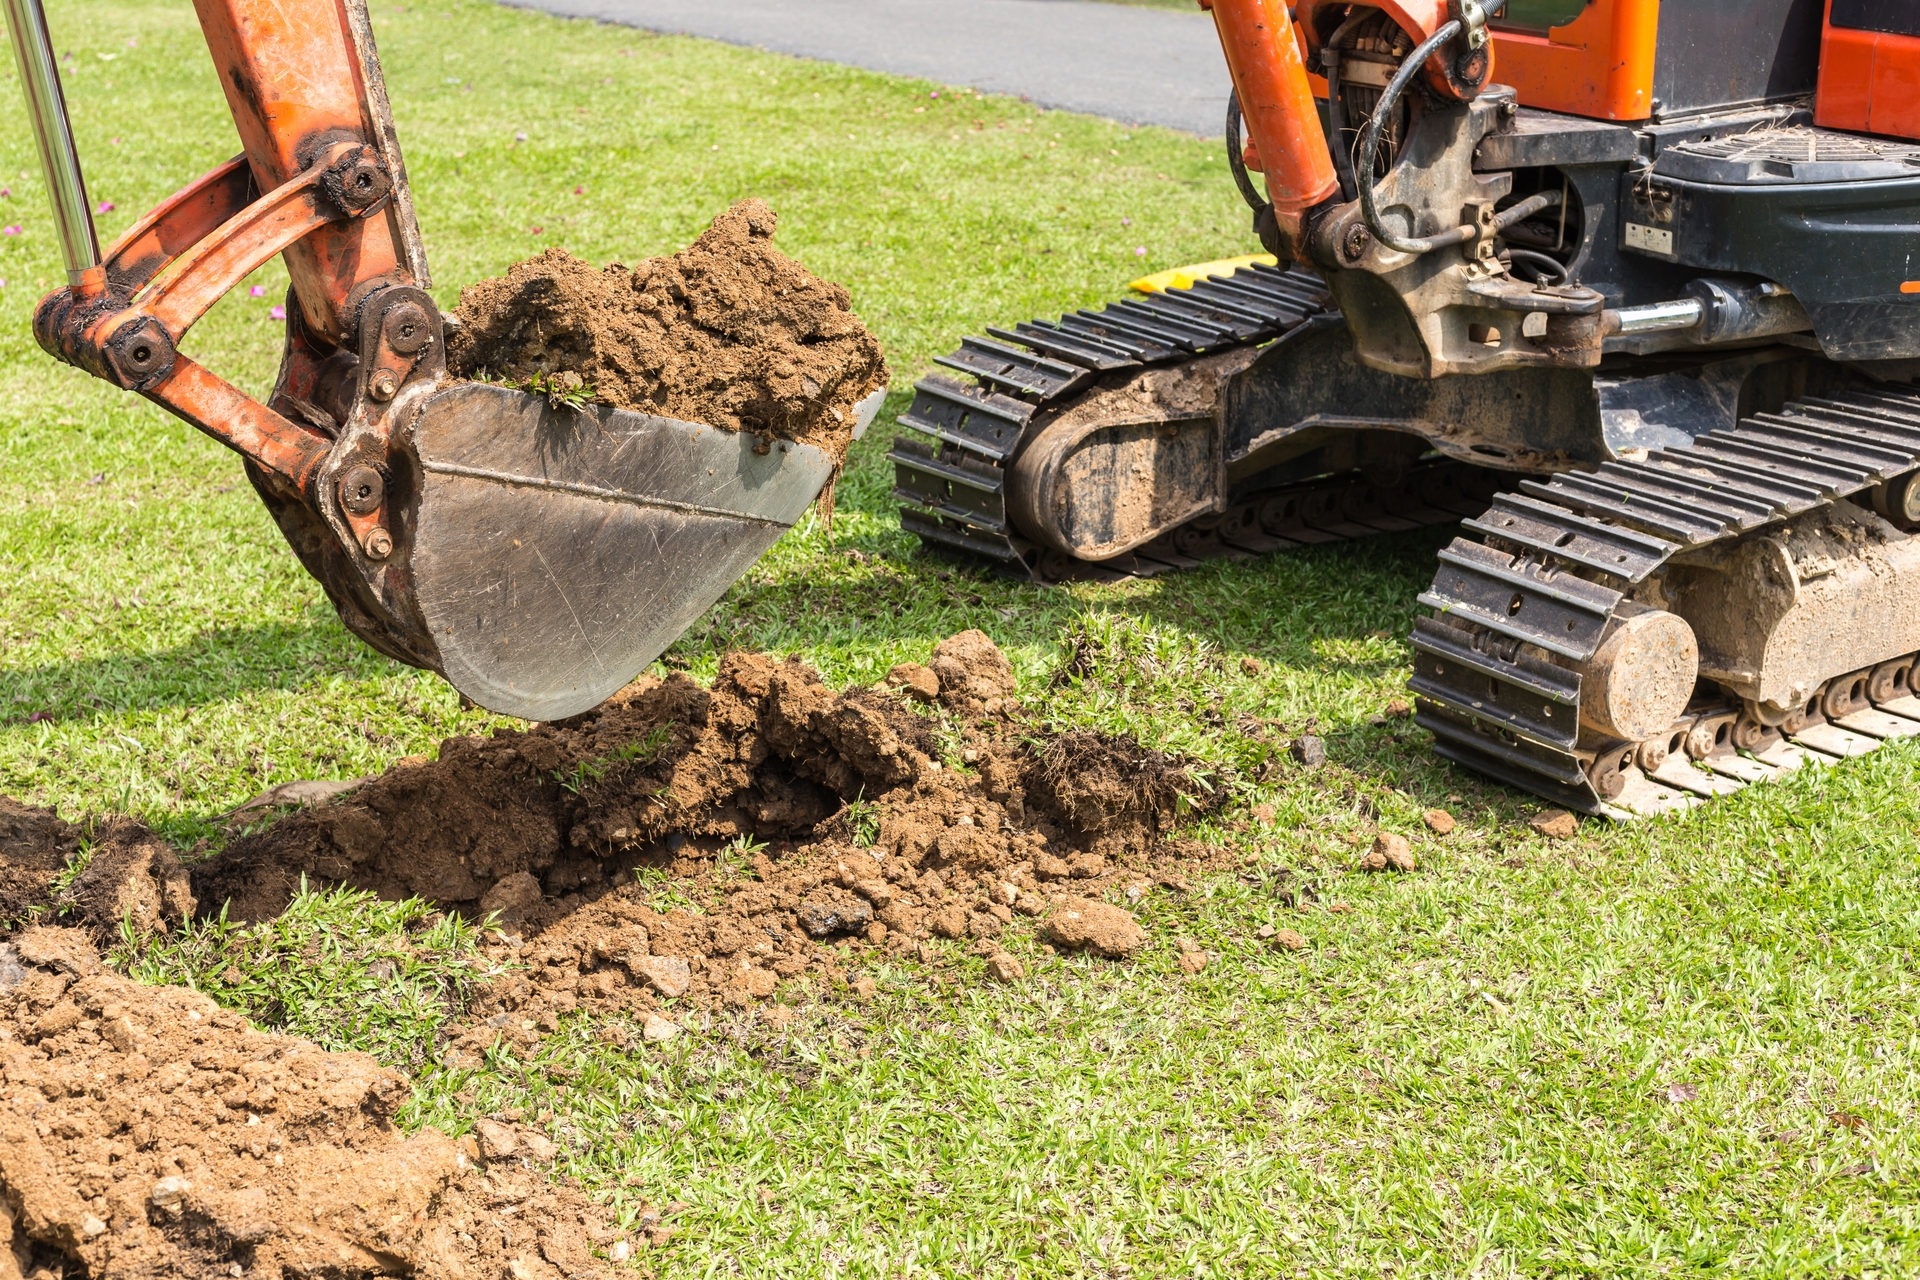 Even contractors should never begin a digging project without calling 811 and having utility lines marked for free.